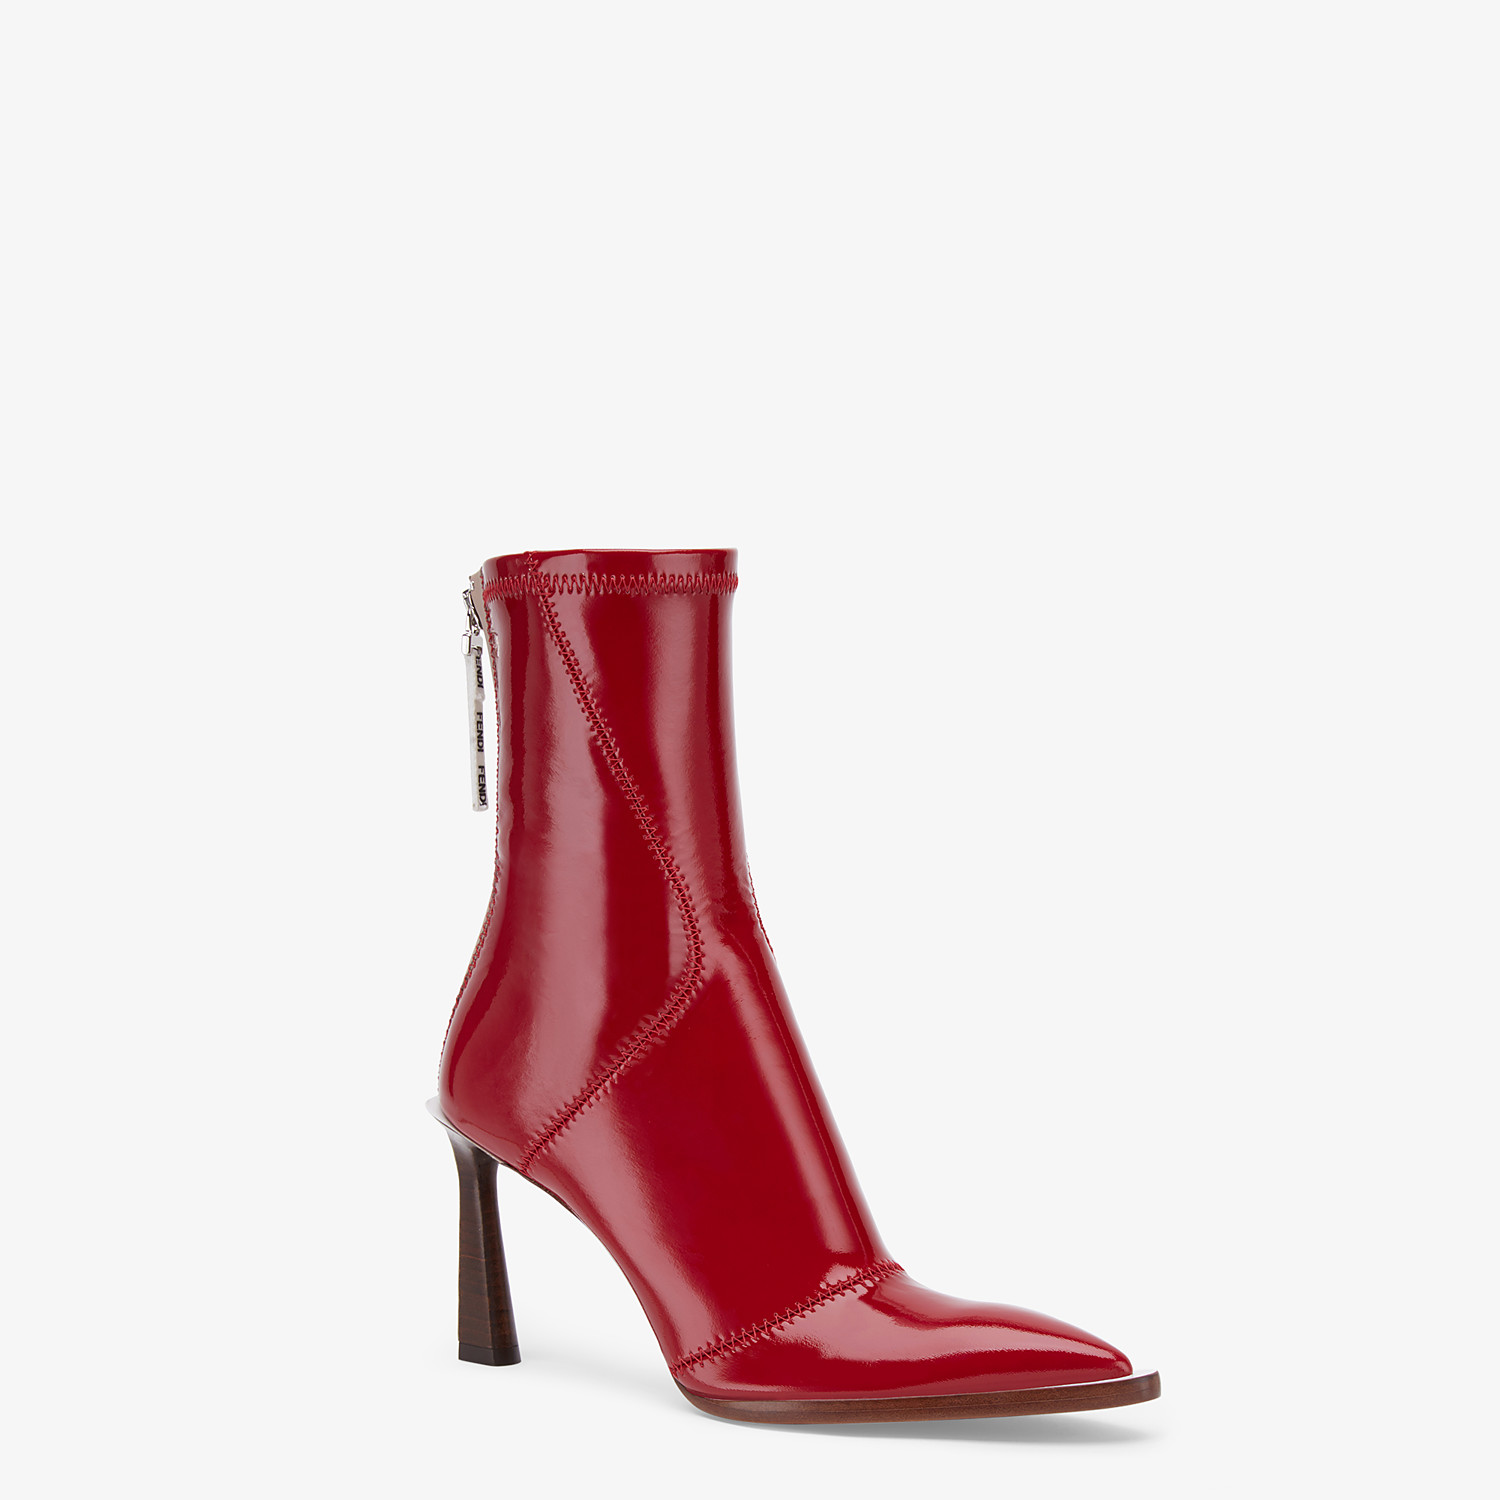 FENDI ANKLE BOOTS - Glossy red neoprene low ankle boots - view 2 detail